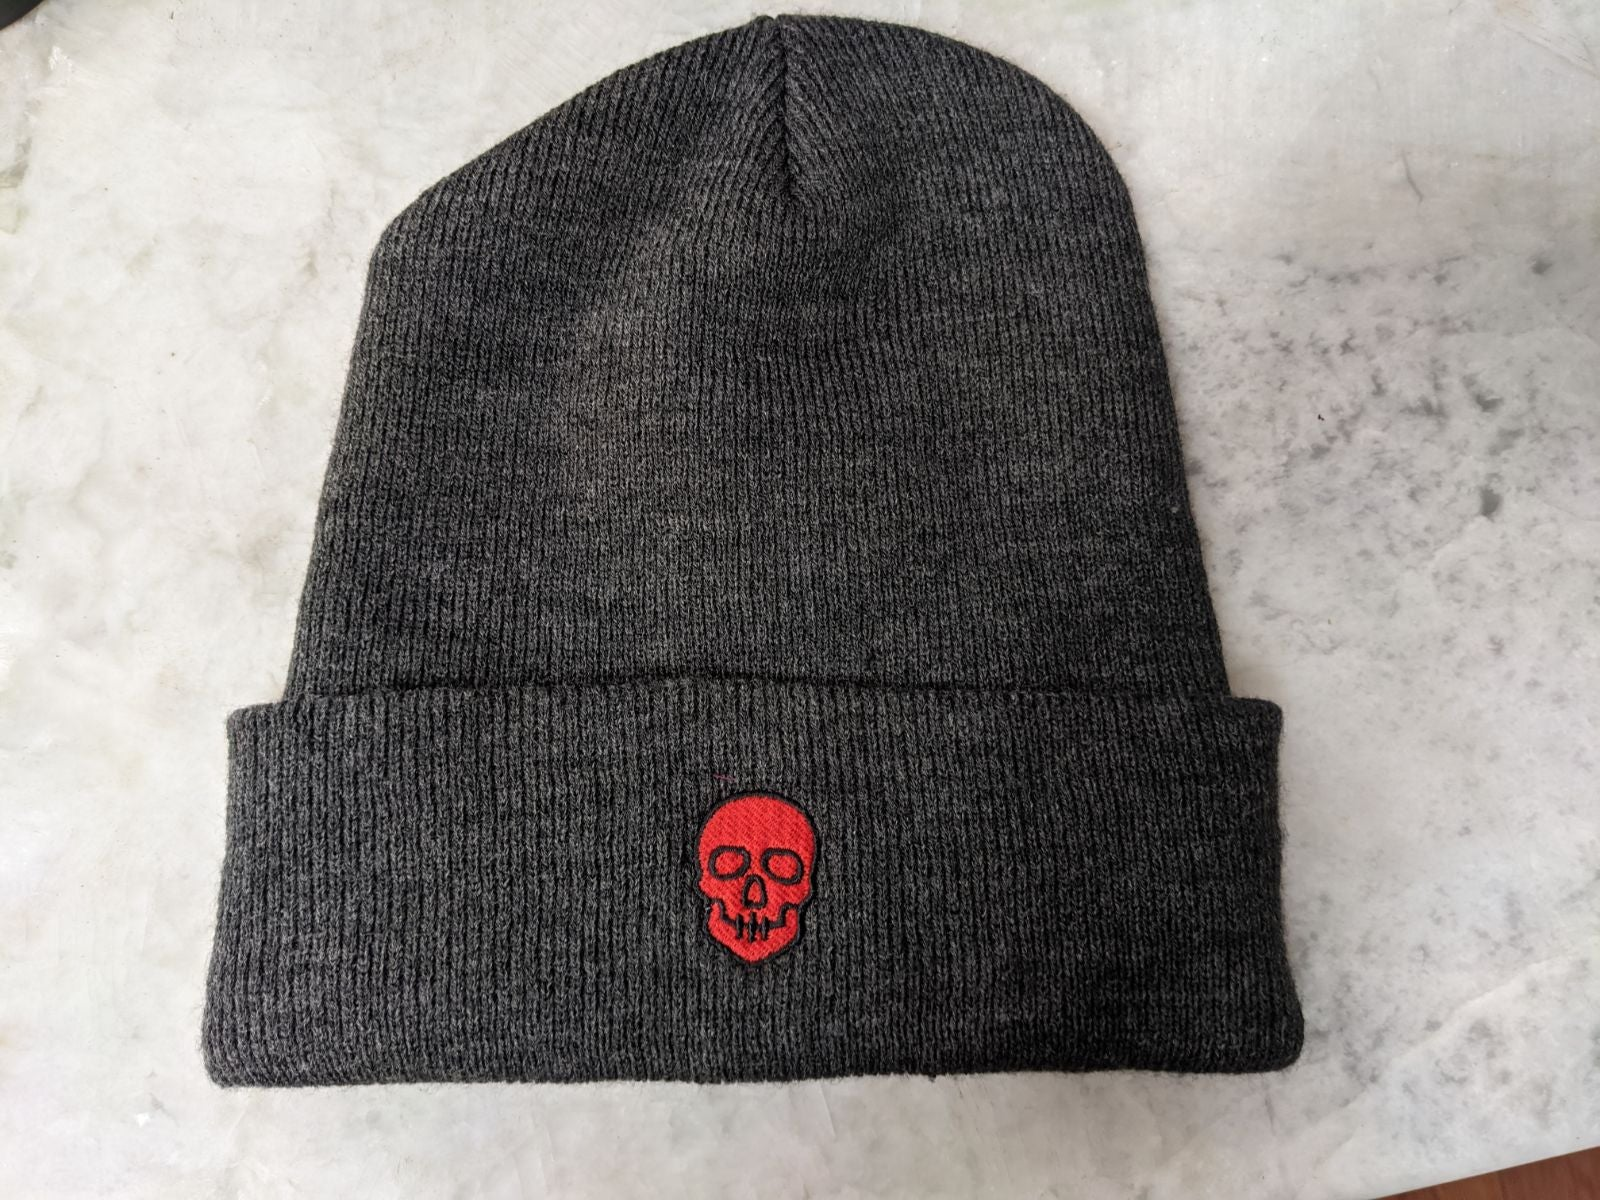 Carhartt Beanie with Red embroidered Sku